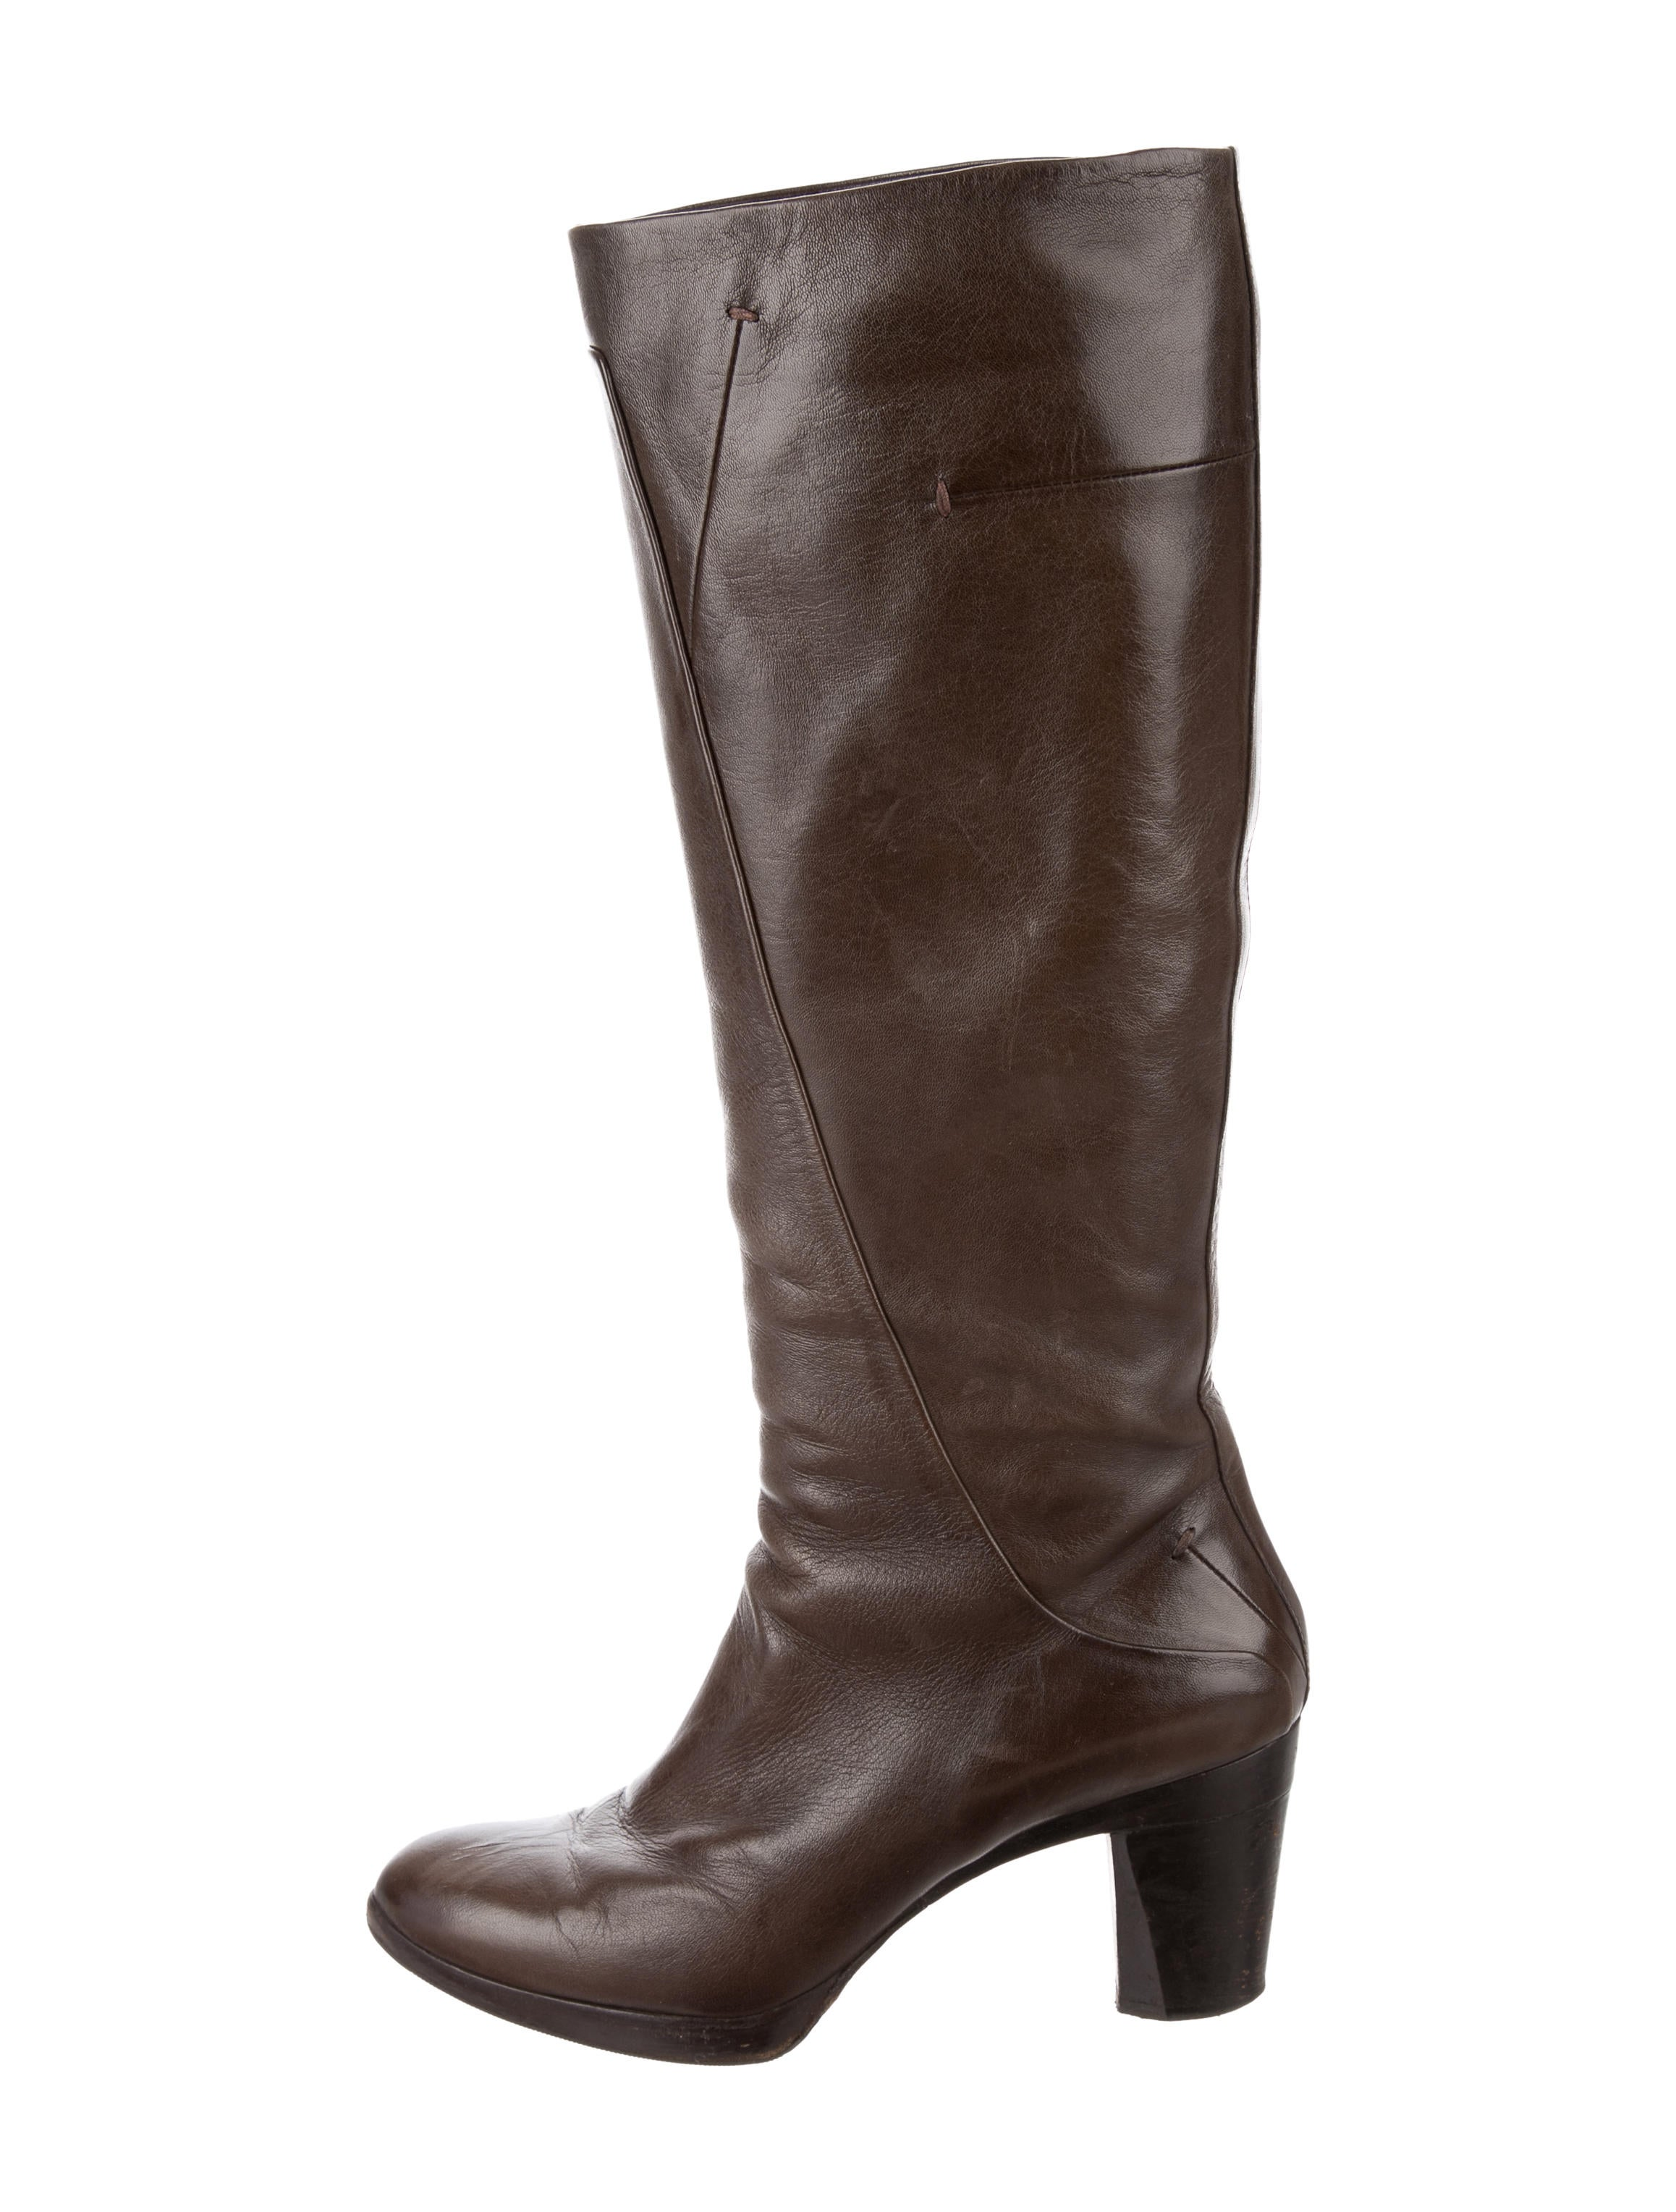 costume national leather knee high boots shoes